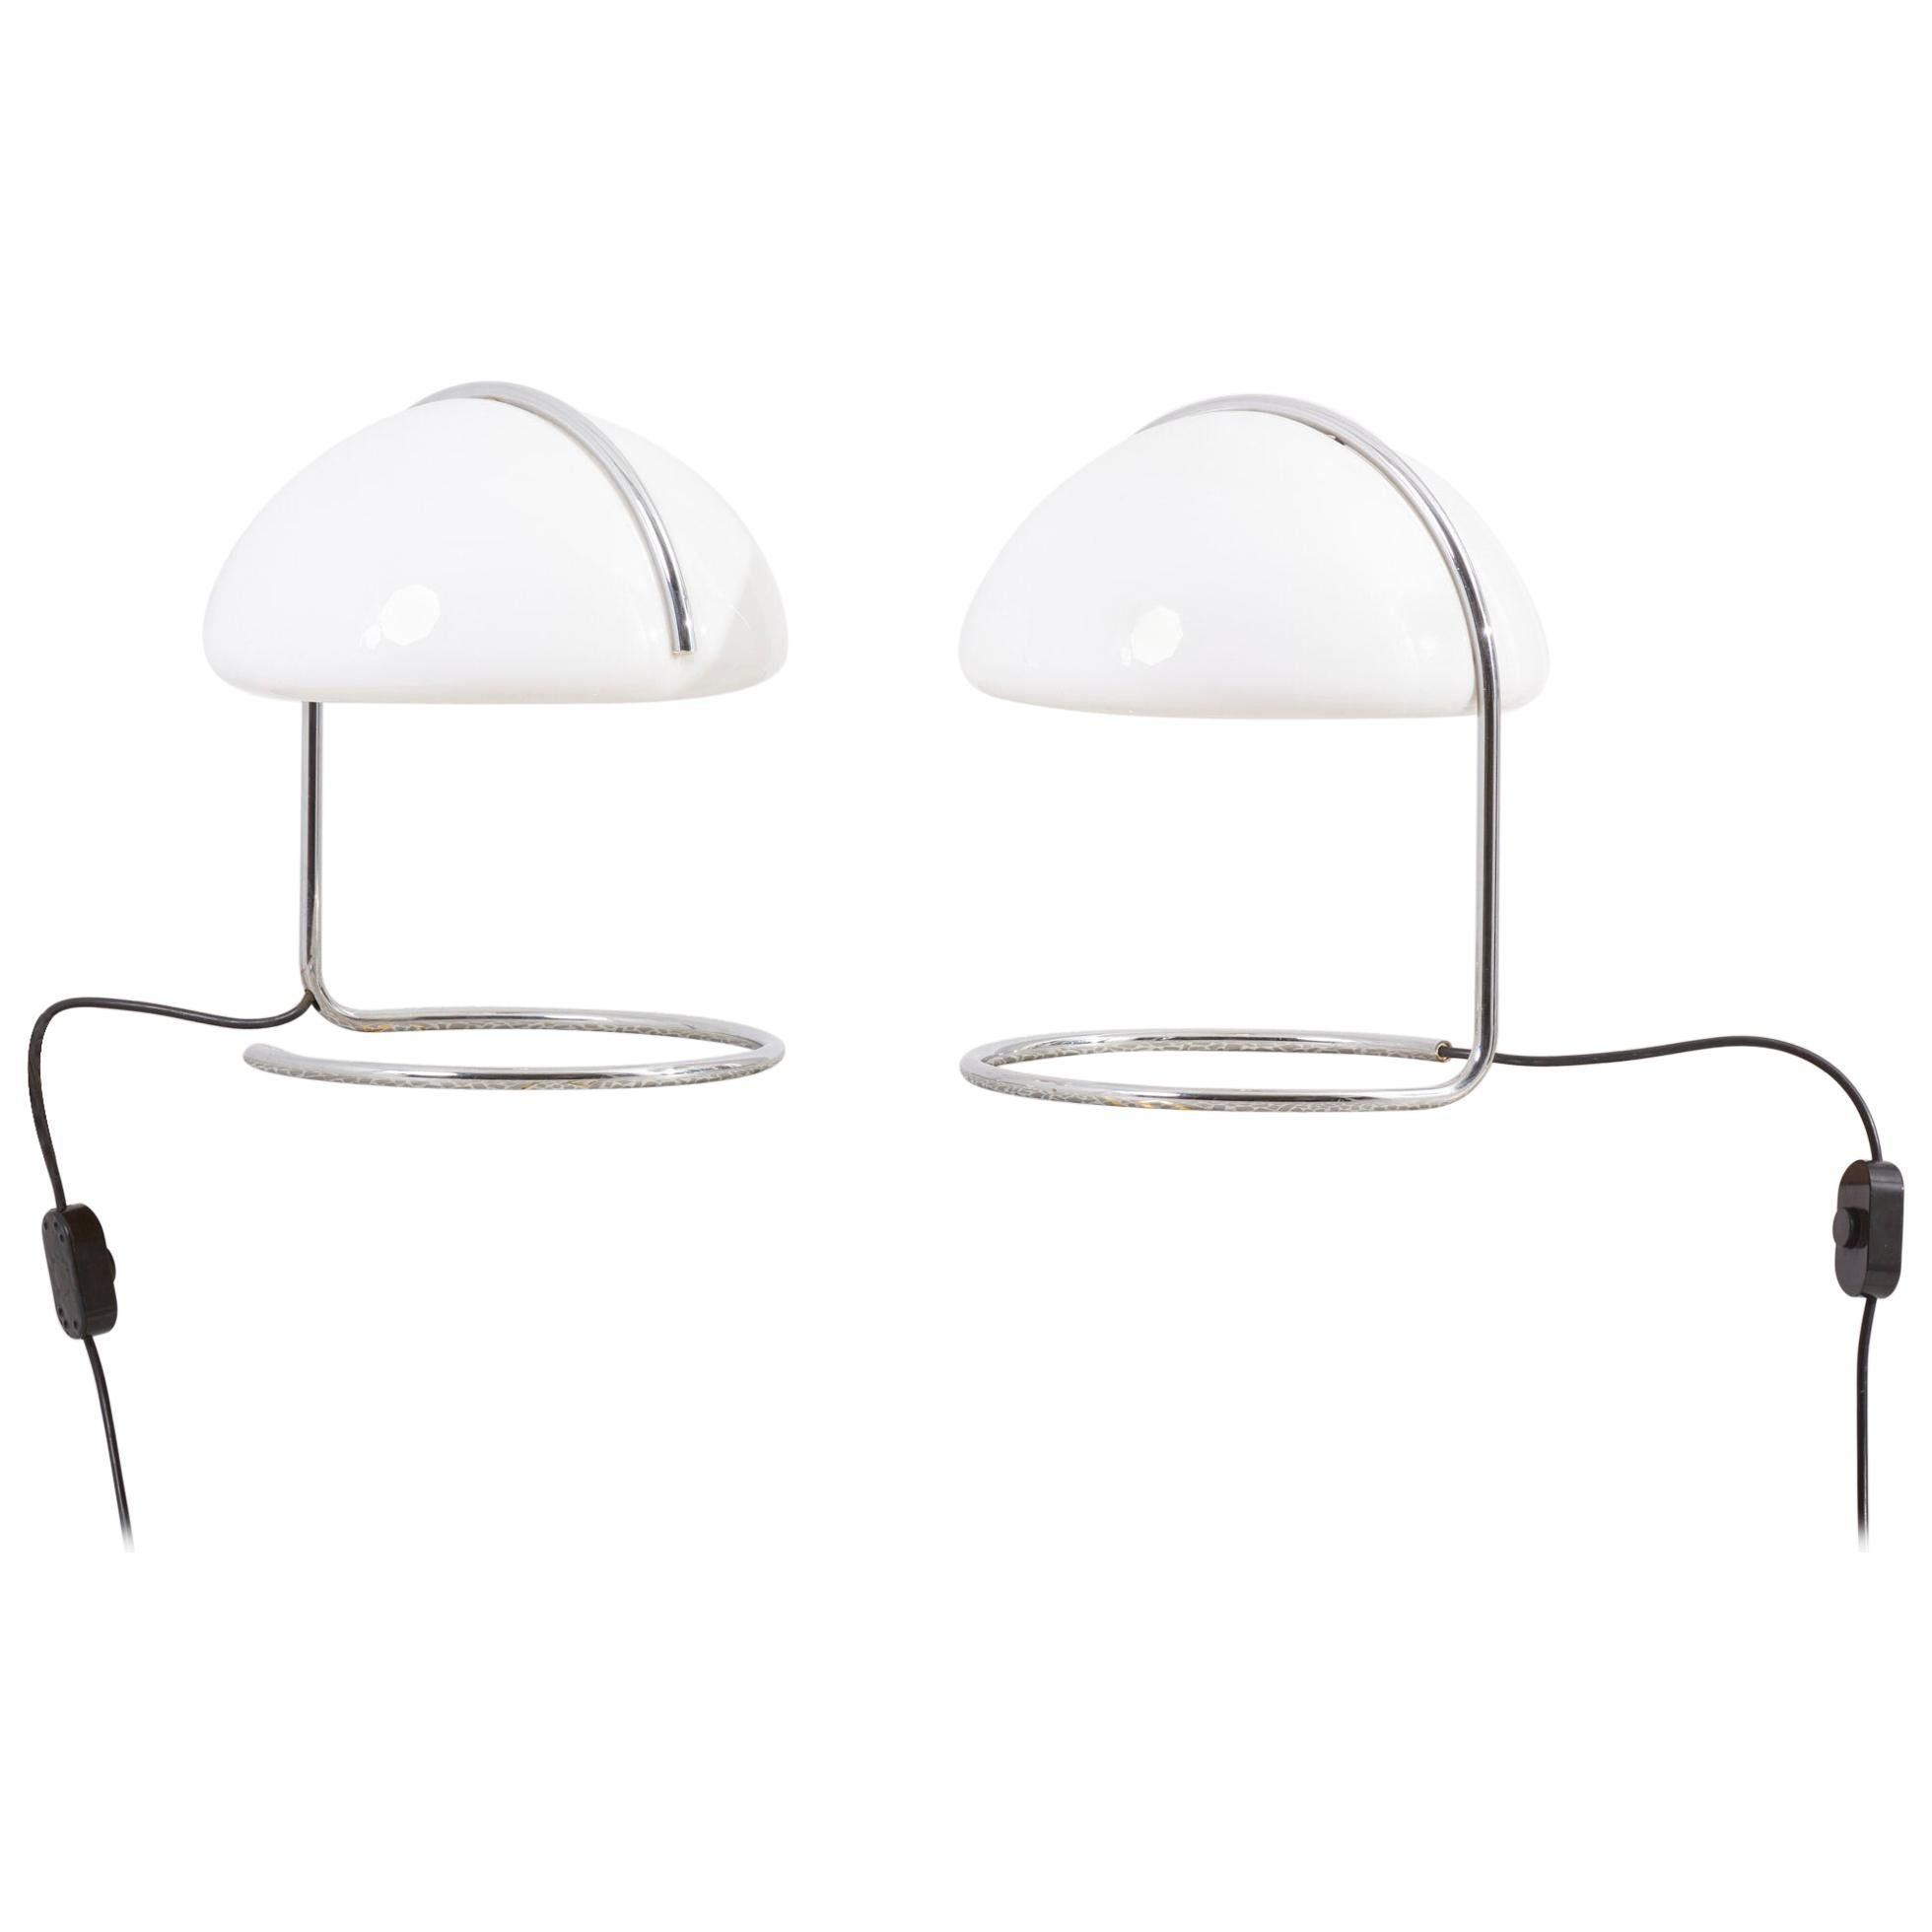 Pair of Table Lamps by Luigi Massoni & Luciano Buttura for Harvey Guzzini, Italy